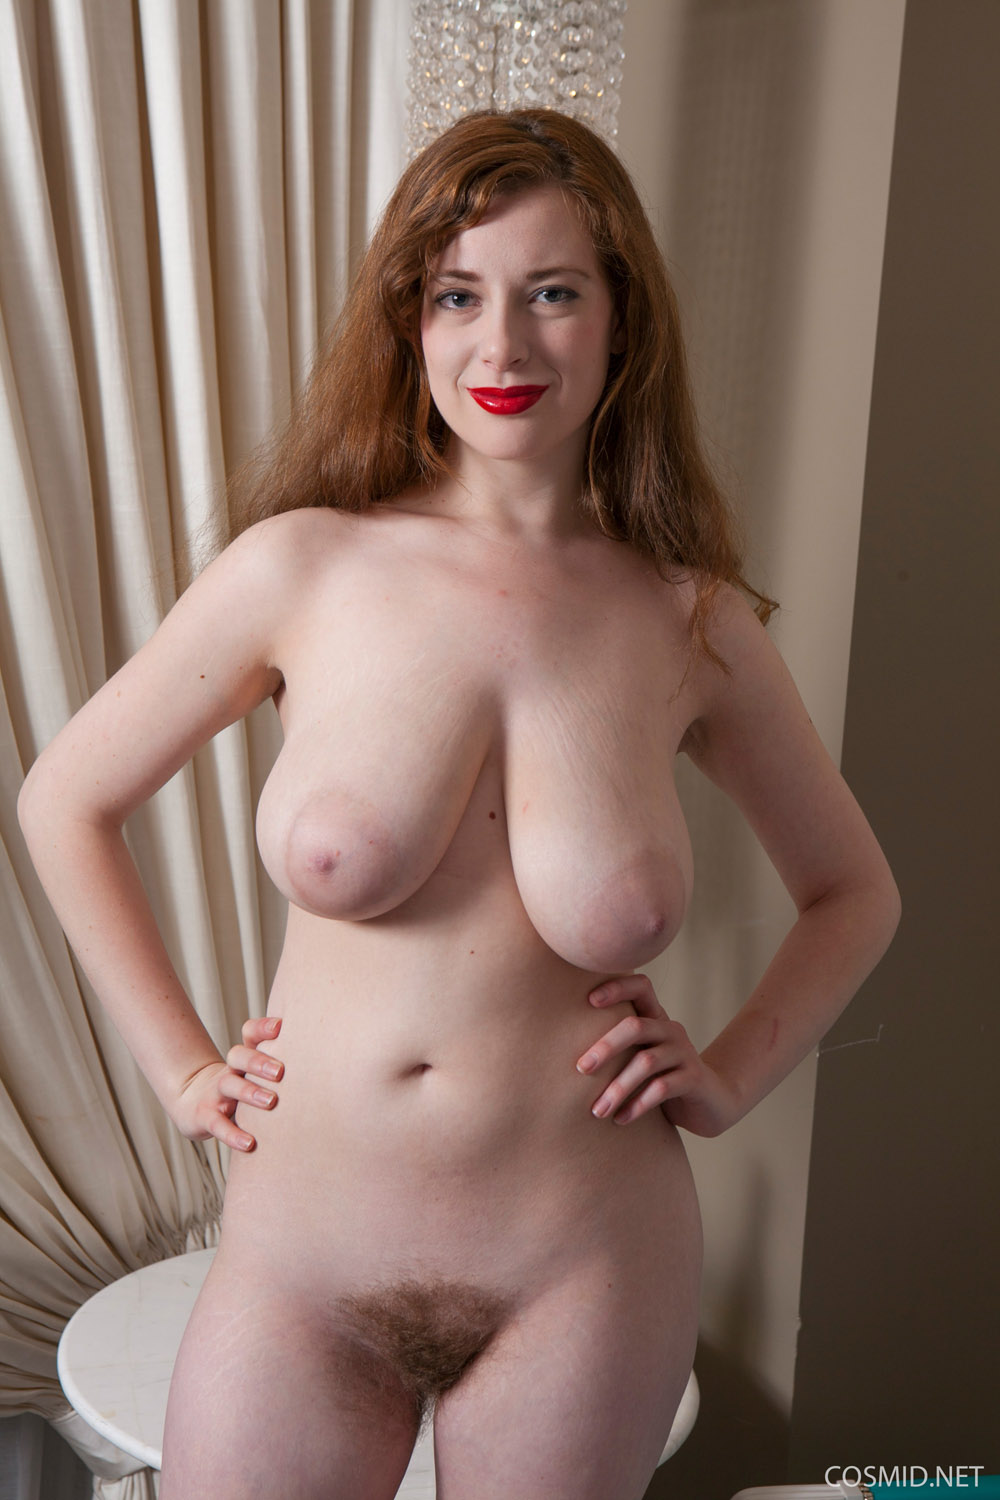 Right! Idea cassie cosmid nude pussy really. join